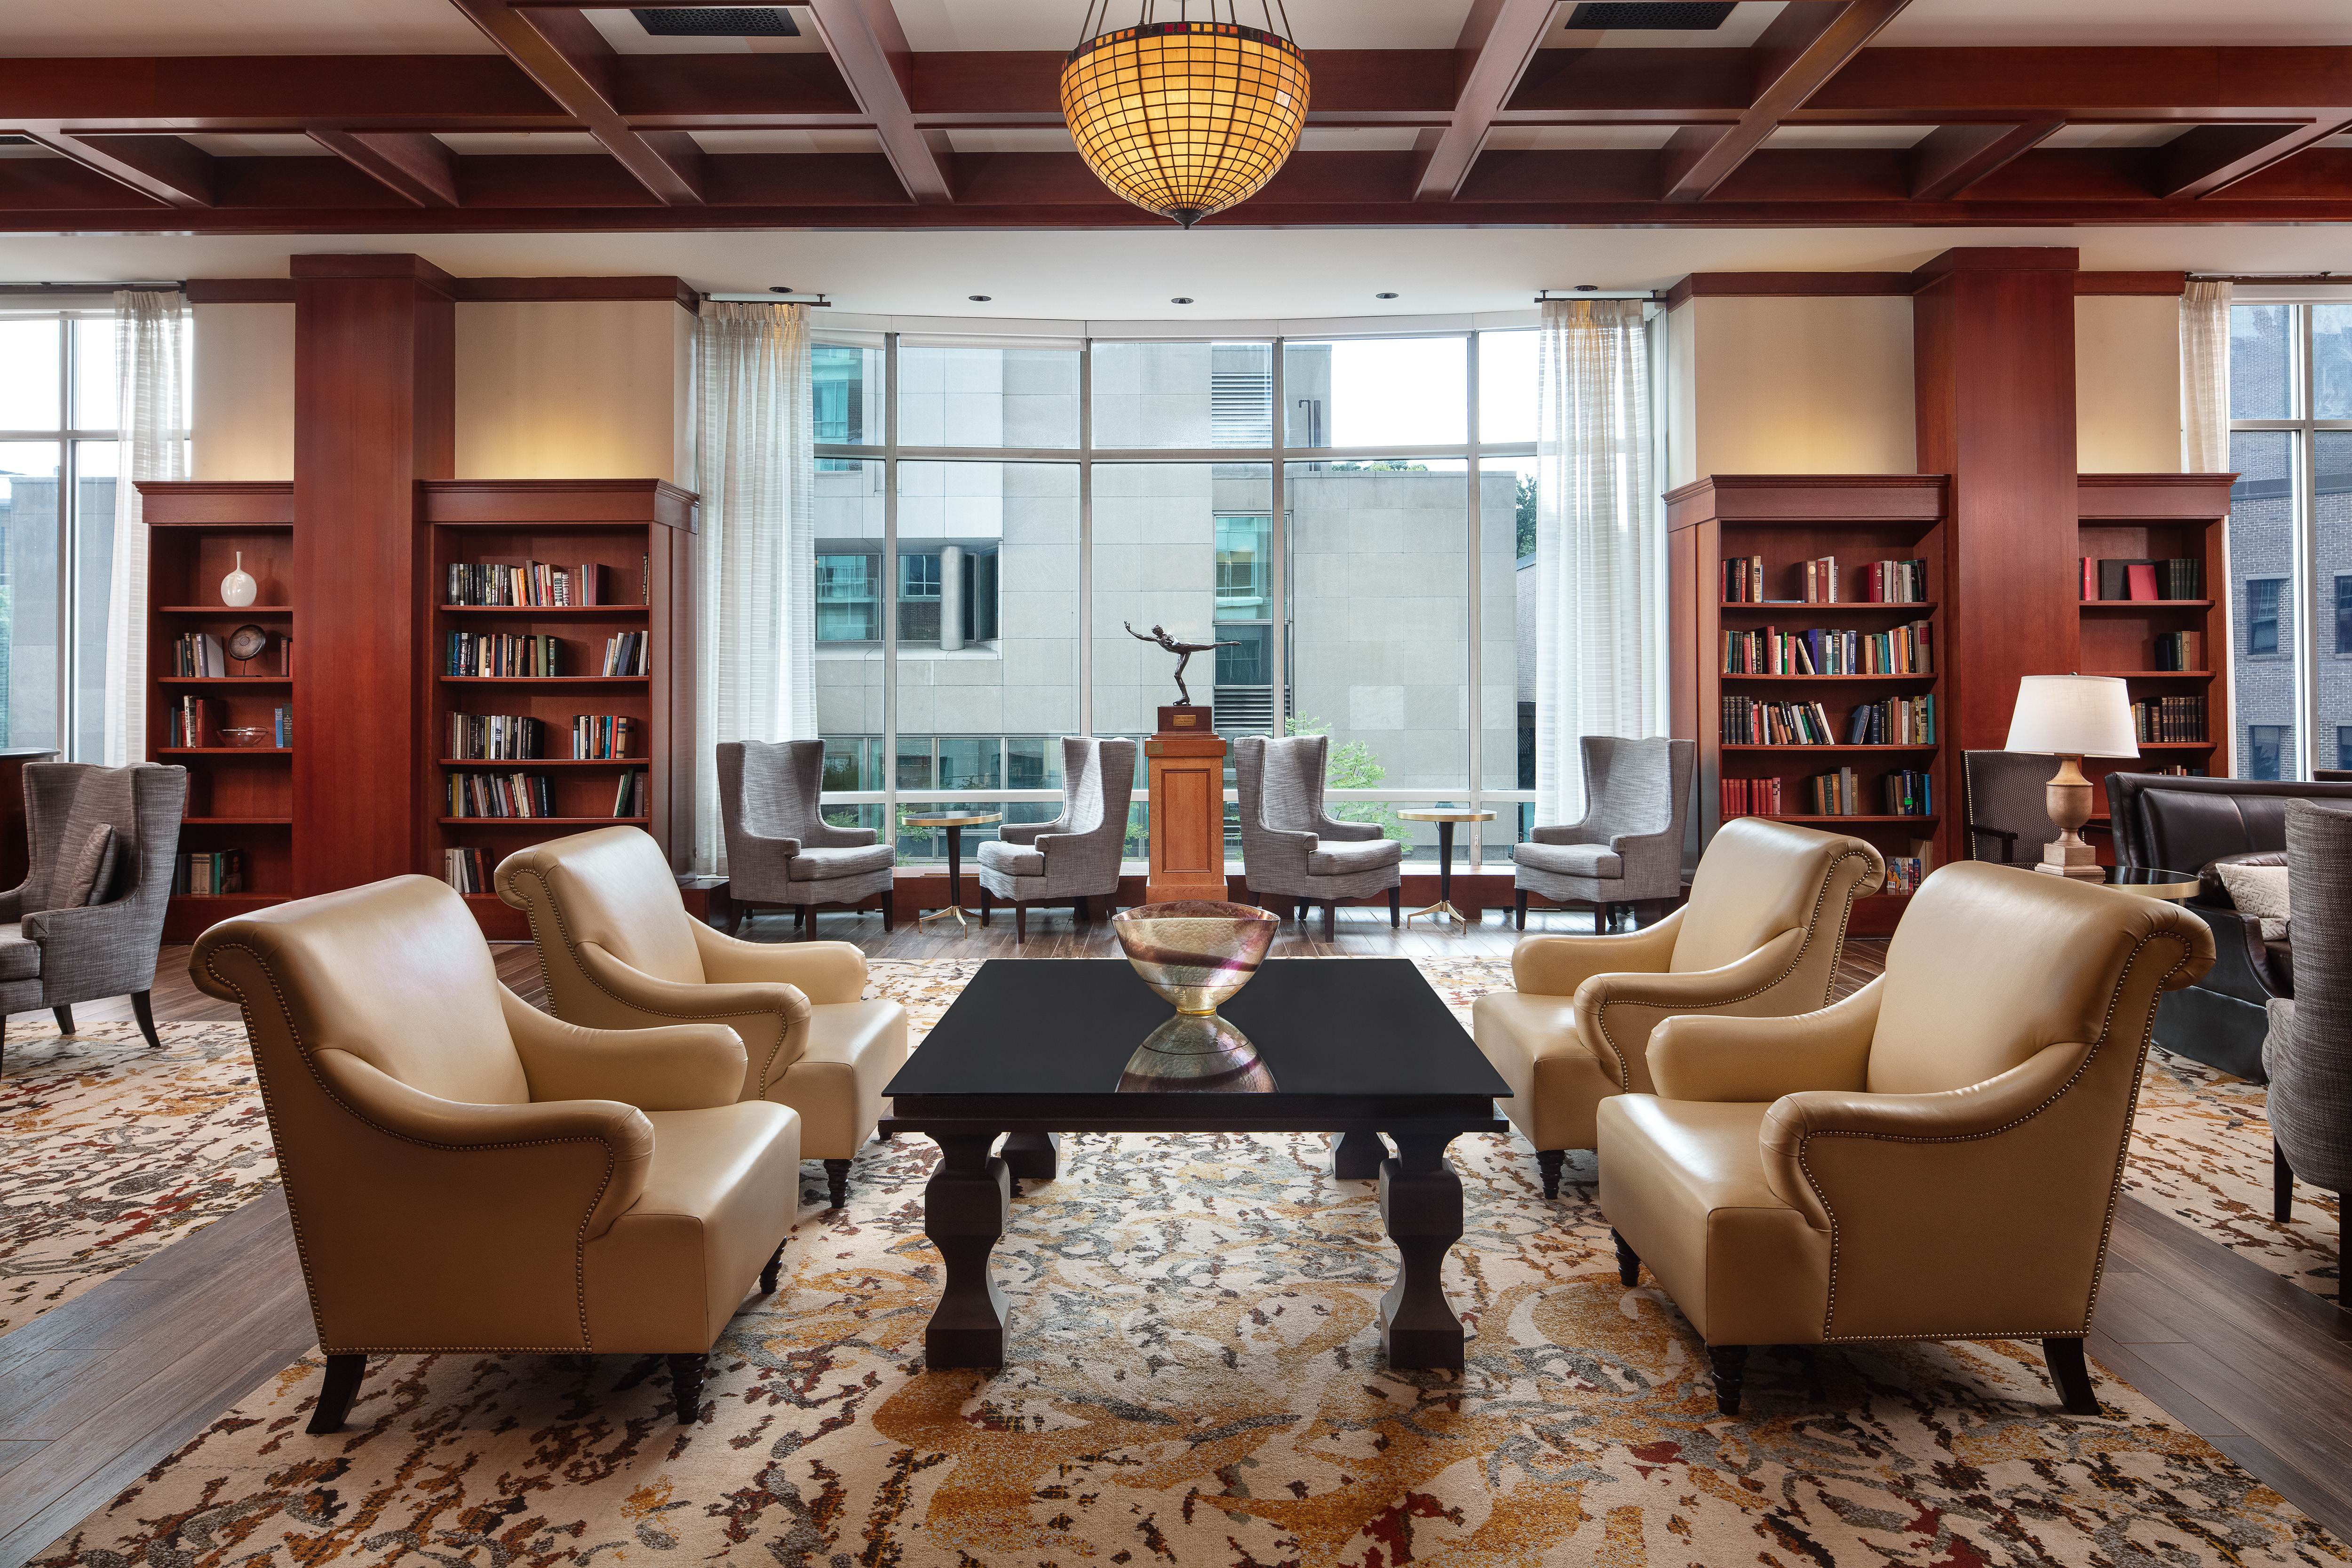 Pure Rooms Help Guests Relax and Rejuvenate at The Inn at Penn, A Hilton Hotel